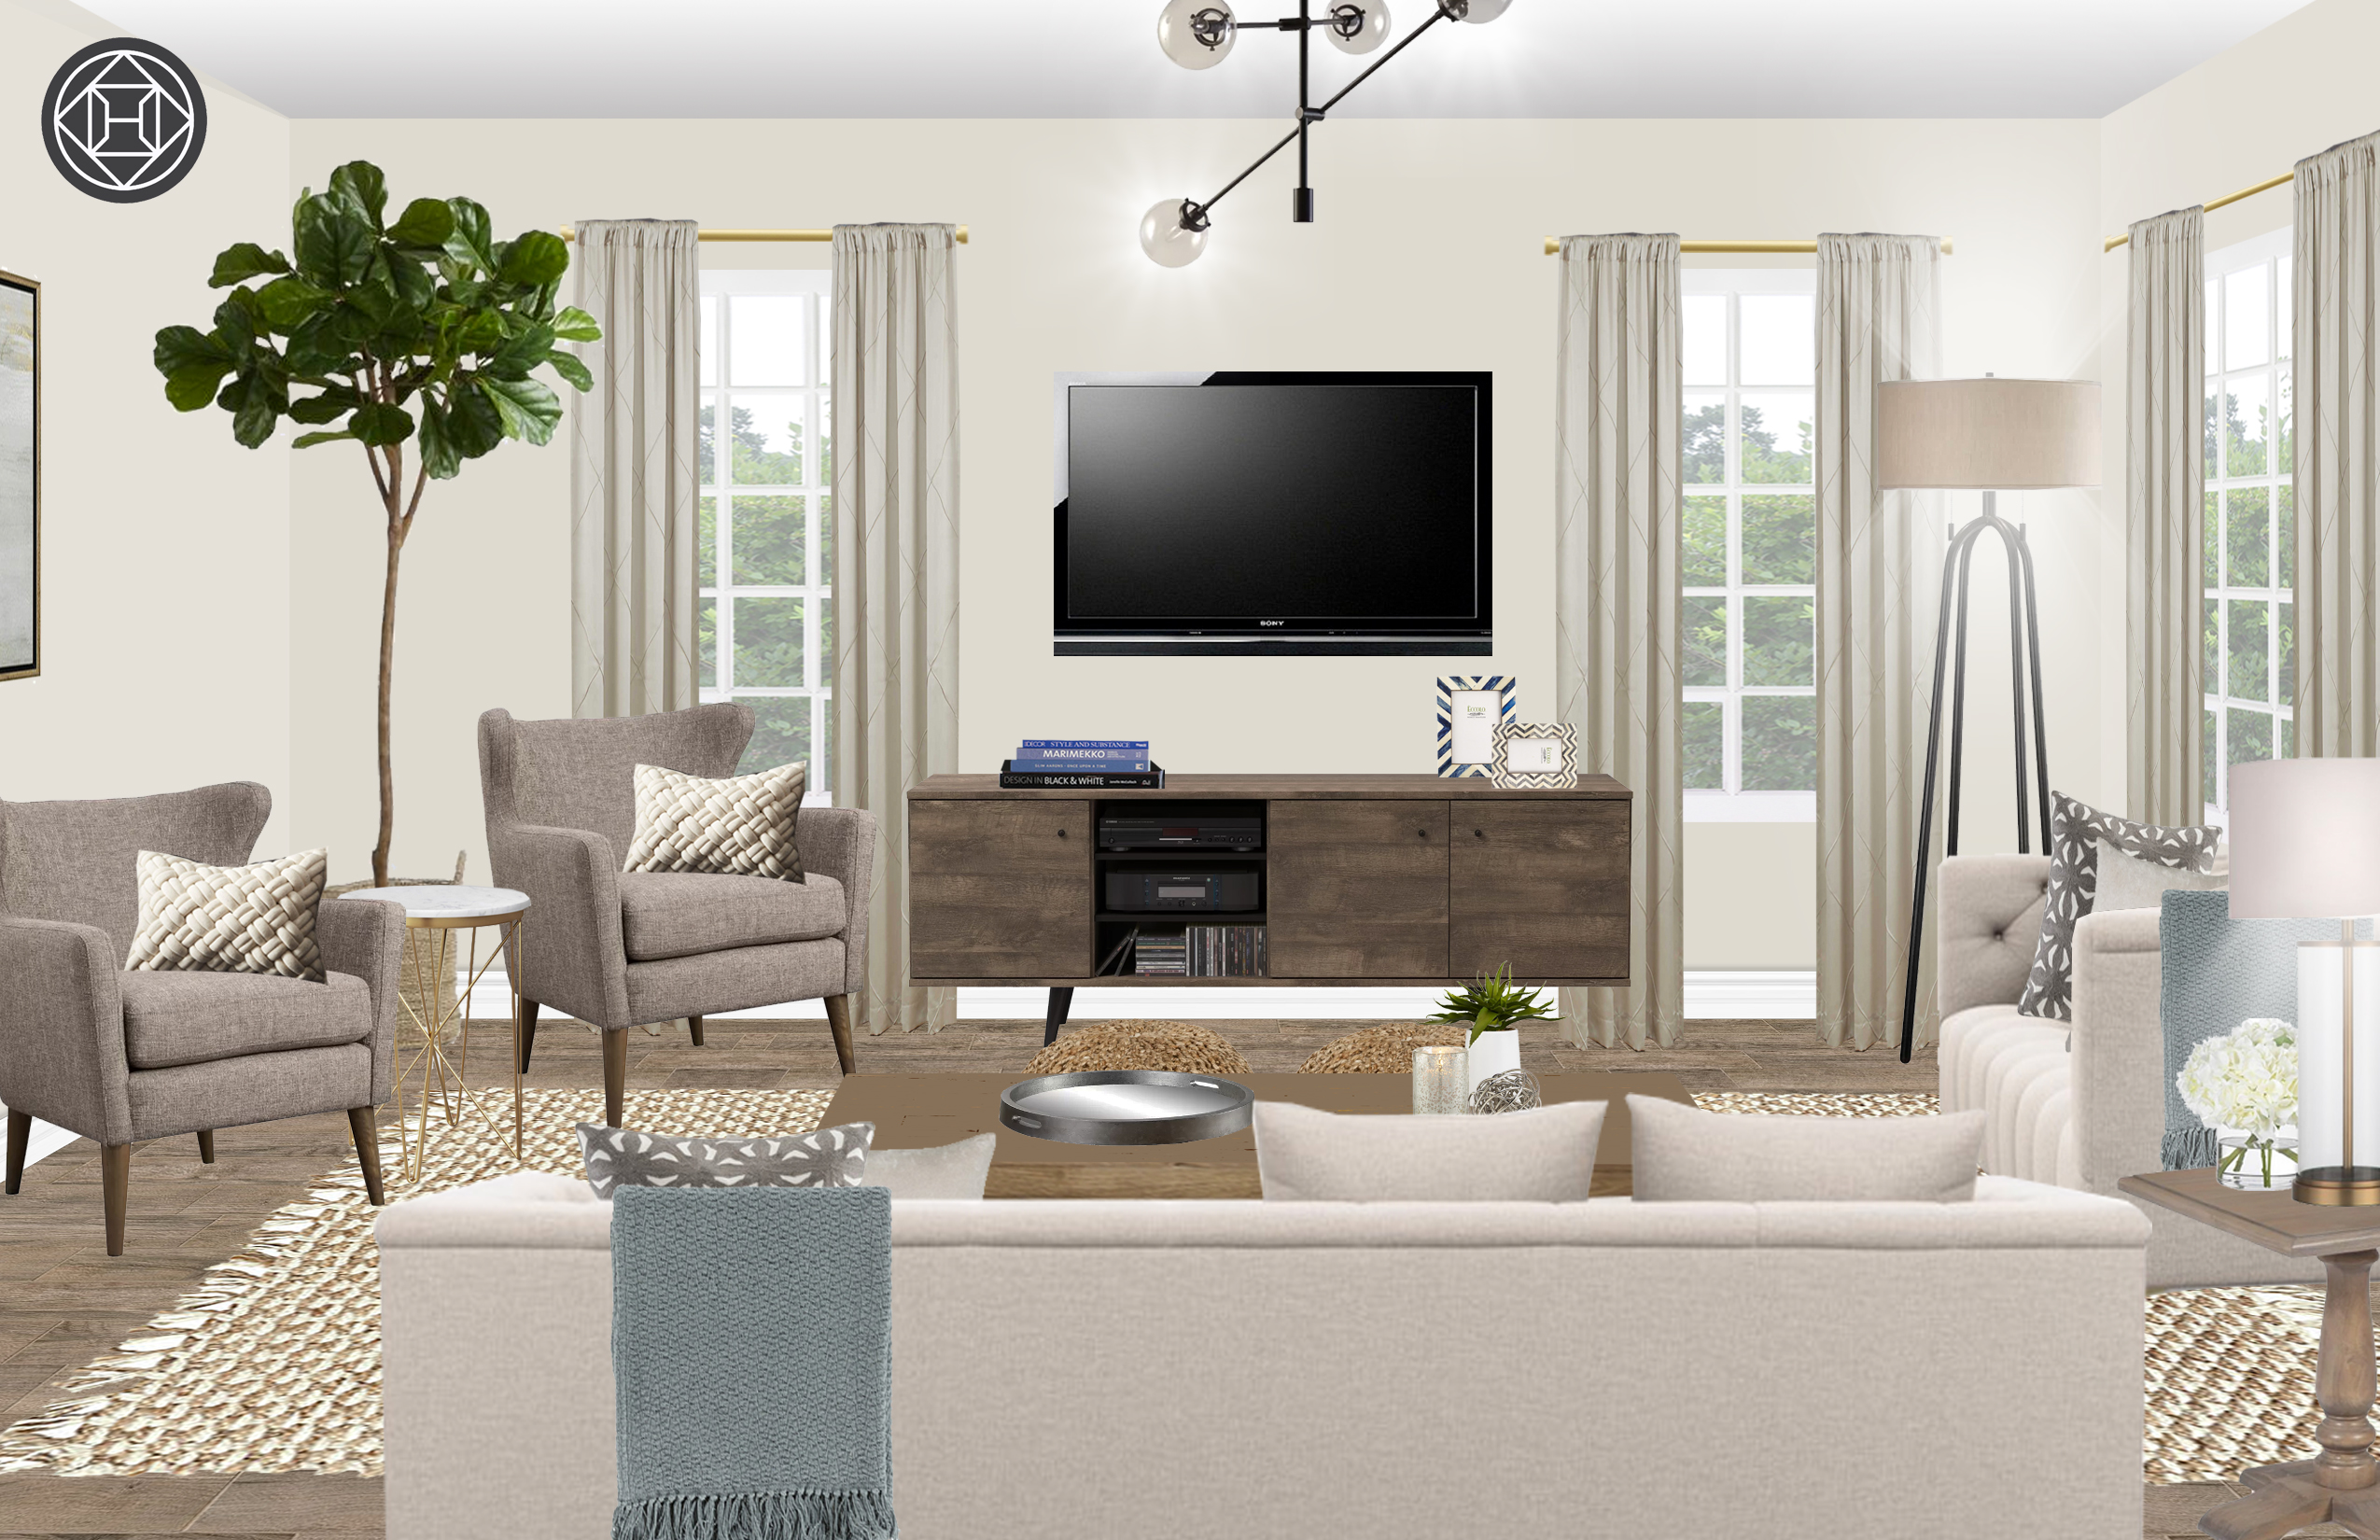 Eclectic Transitional Living Room Design By Havenly